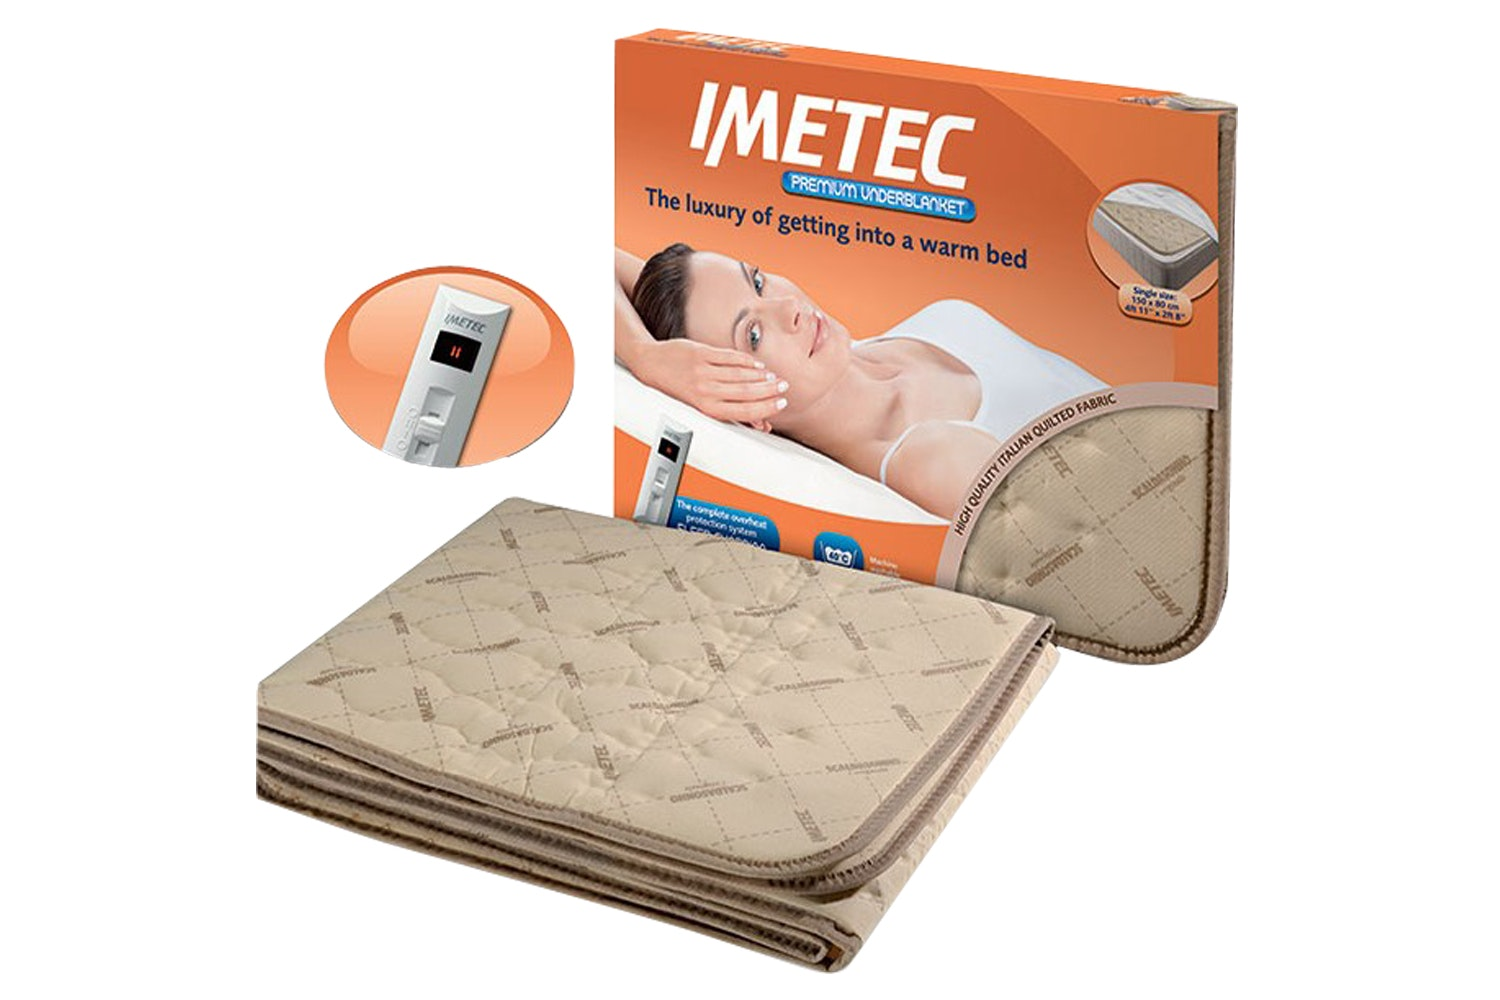 Imetec Double Under Blanket Dual Control